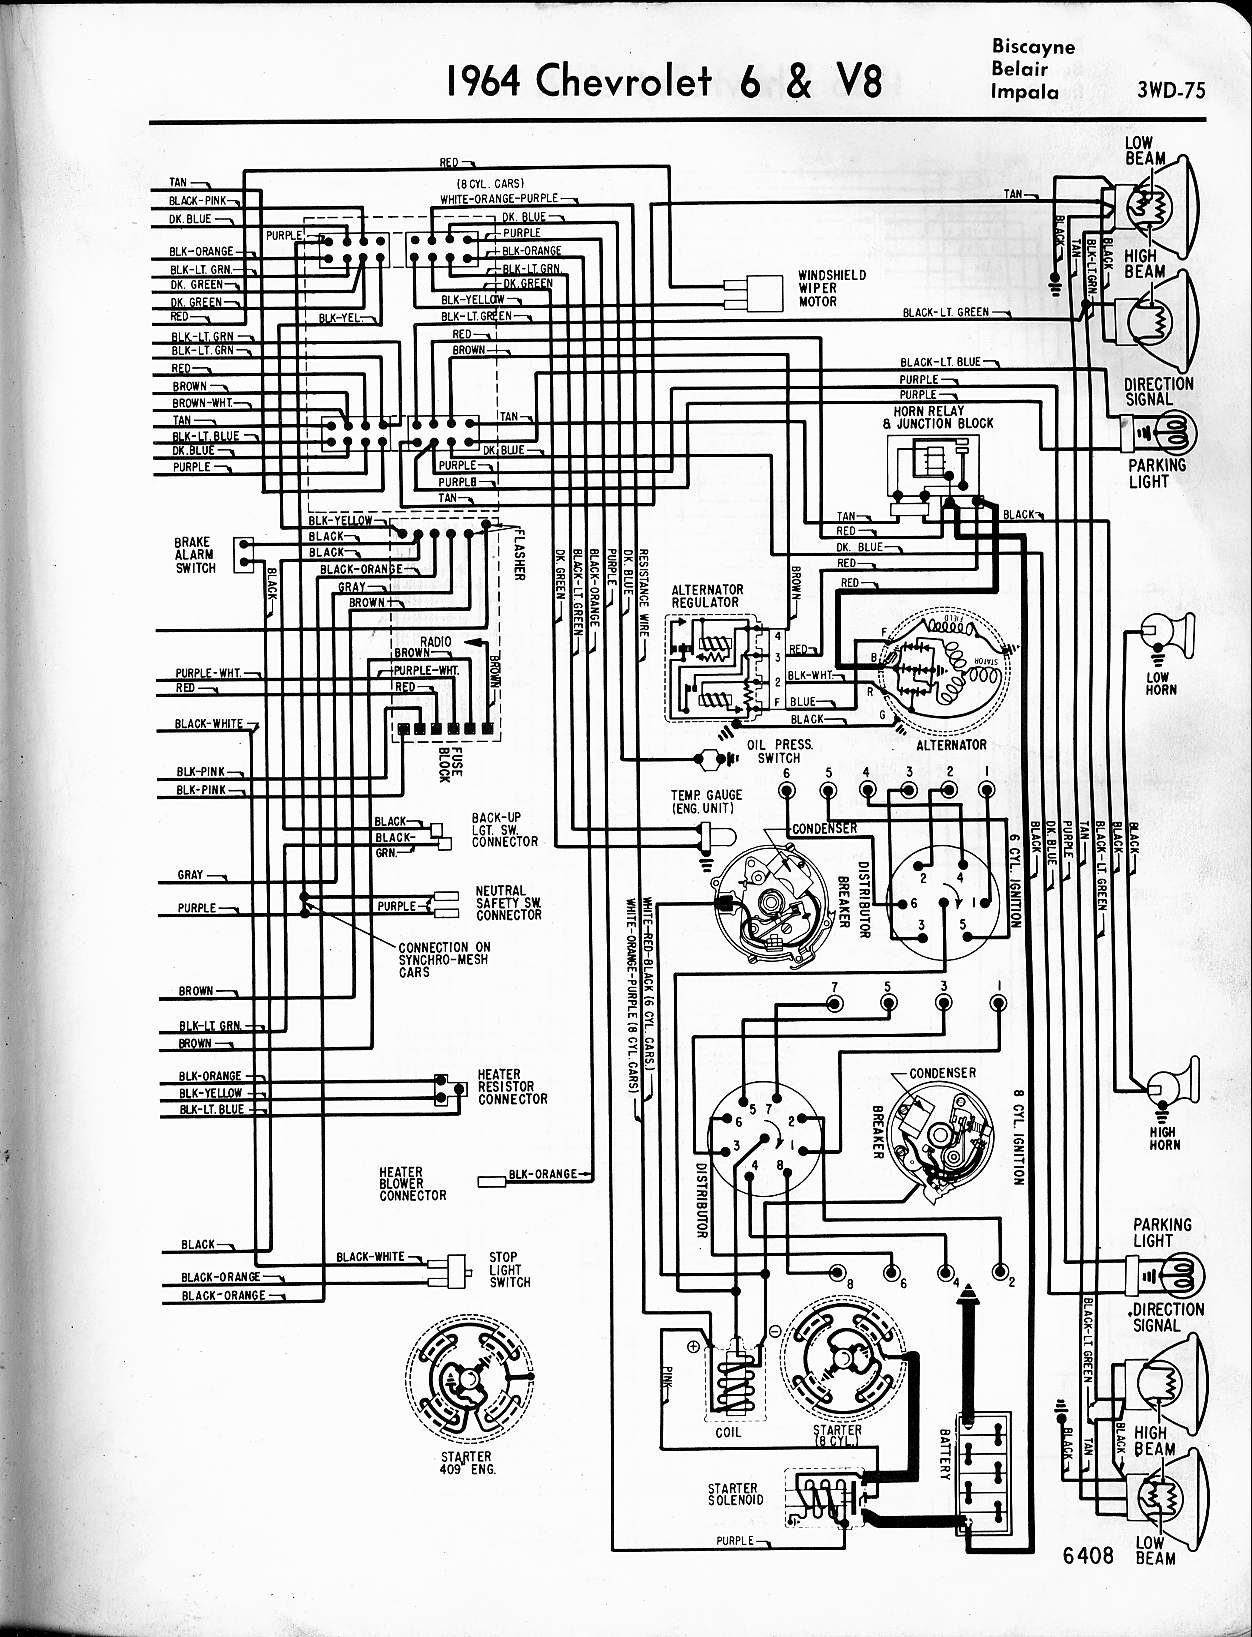 hight resolution of 64 chevy wiring diagram wiring diagram center 64 nova wiring diagram